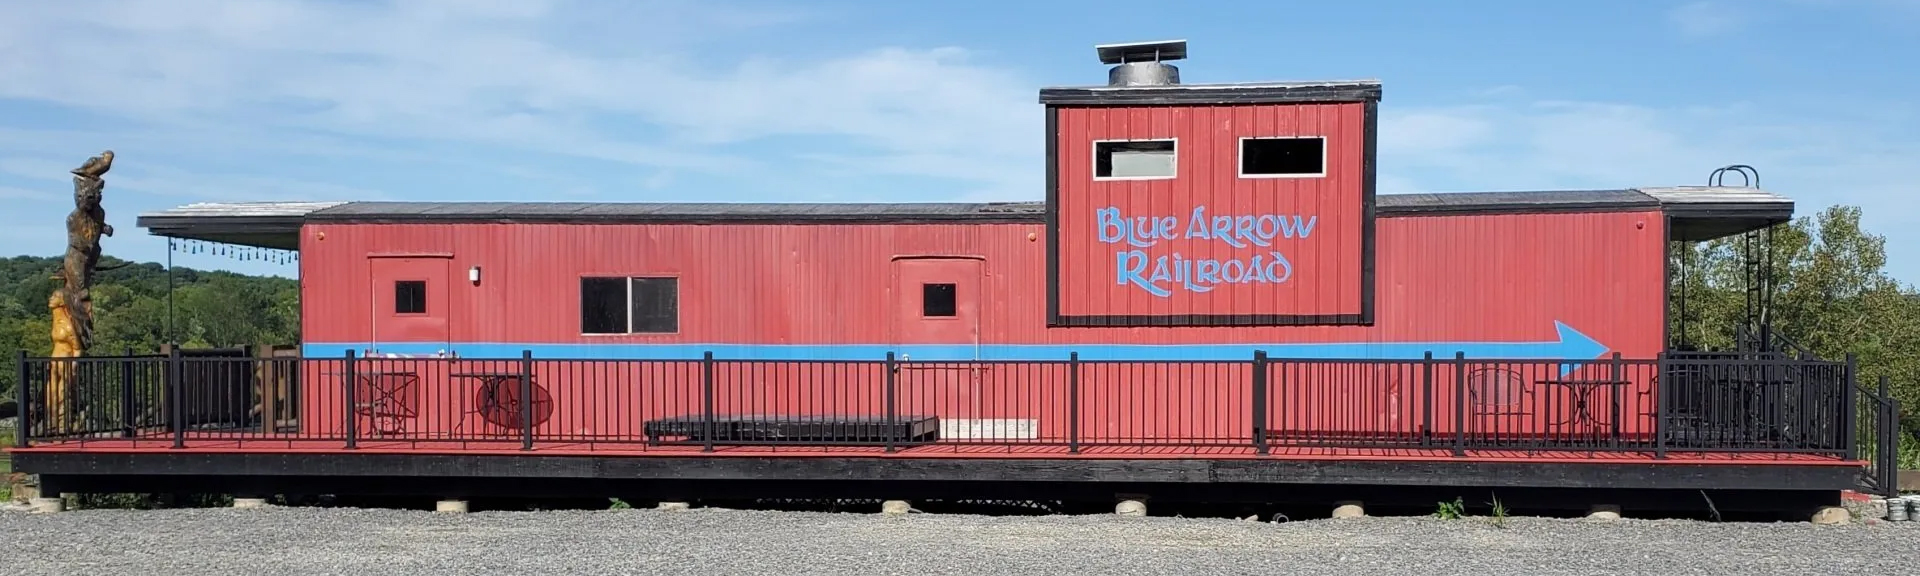 "Red train car with cafe seating and ""Blue Arrow Railroad"" painted on it"